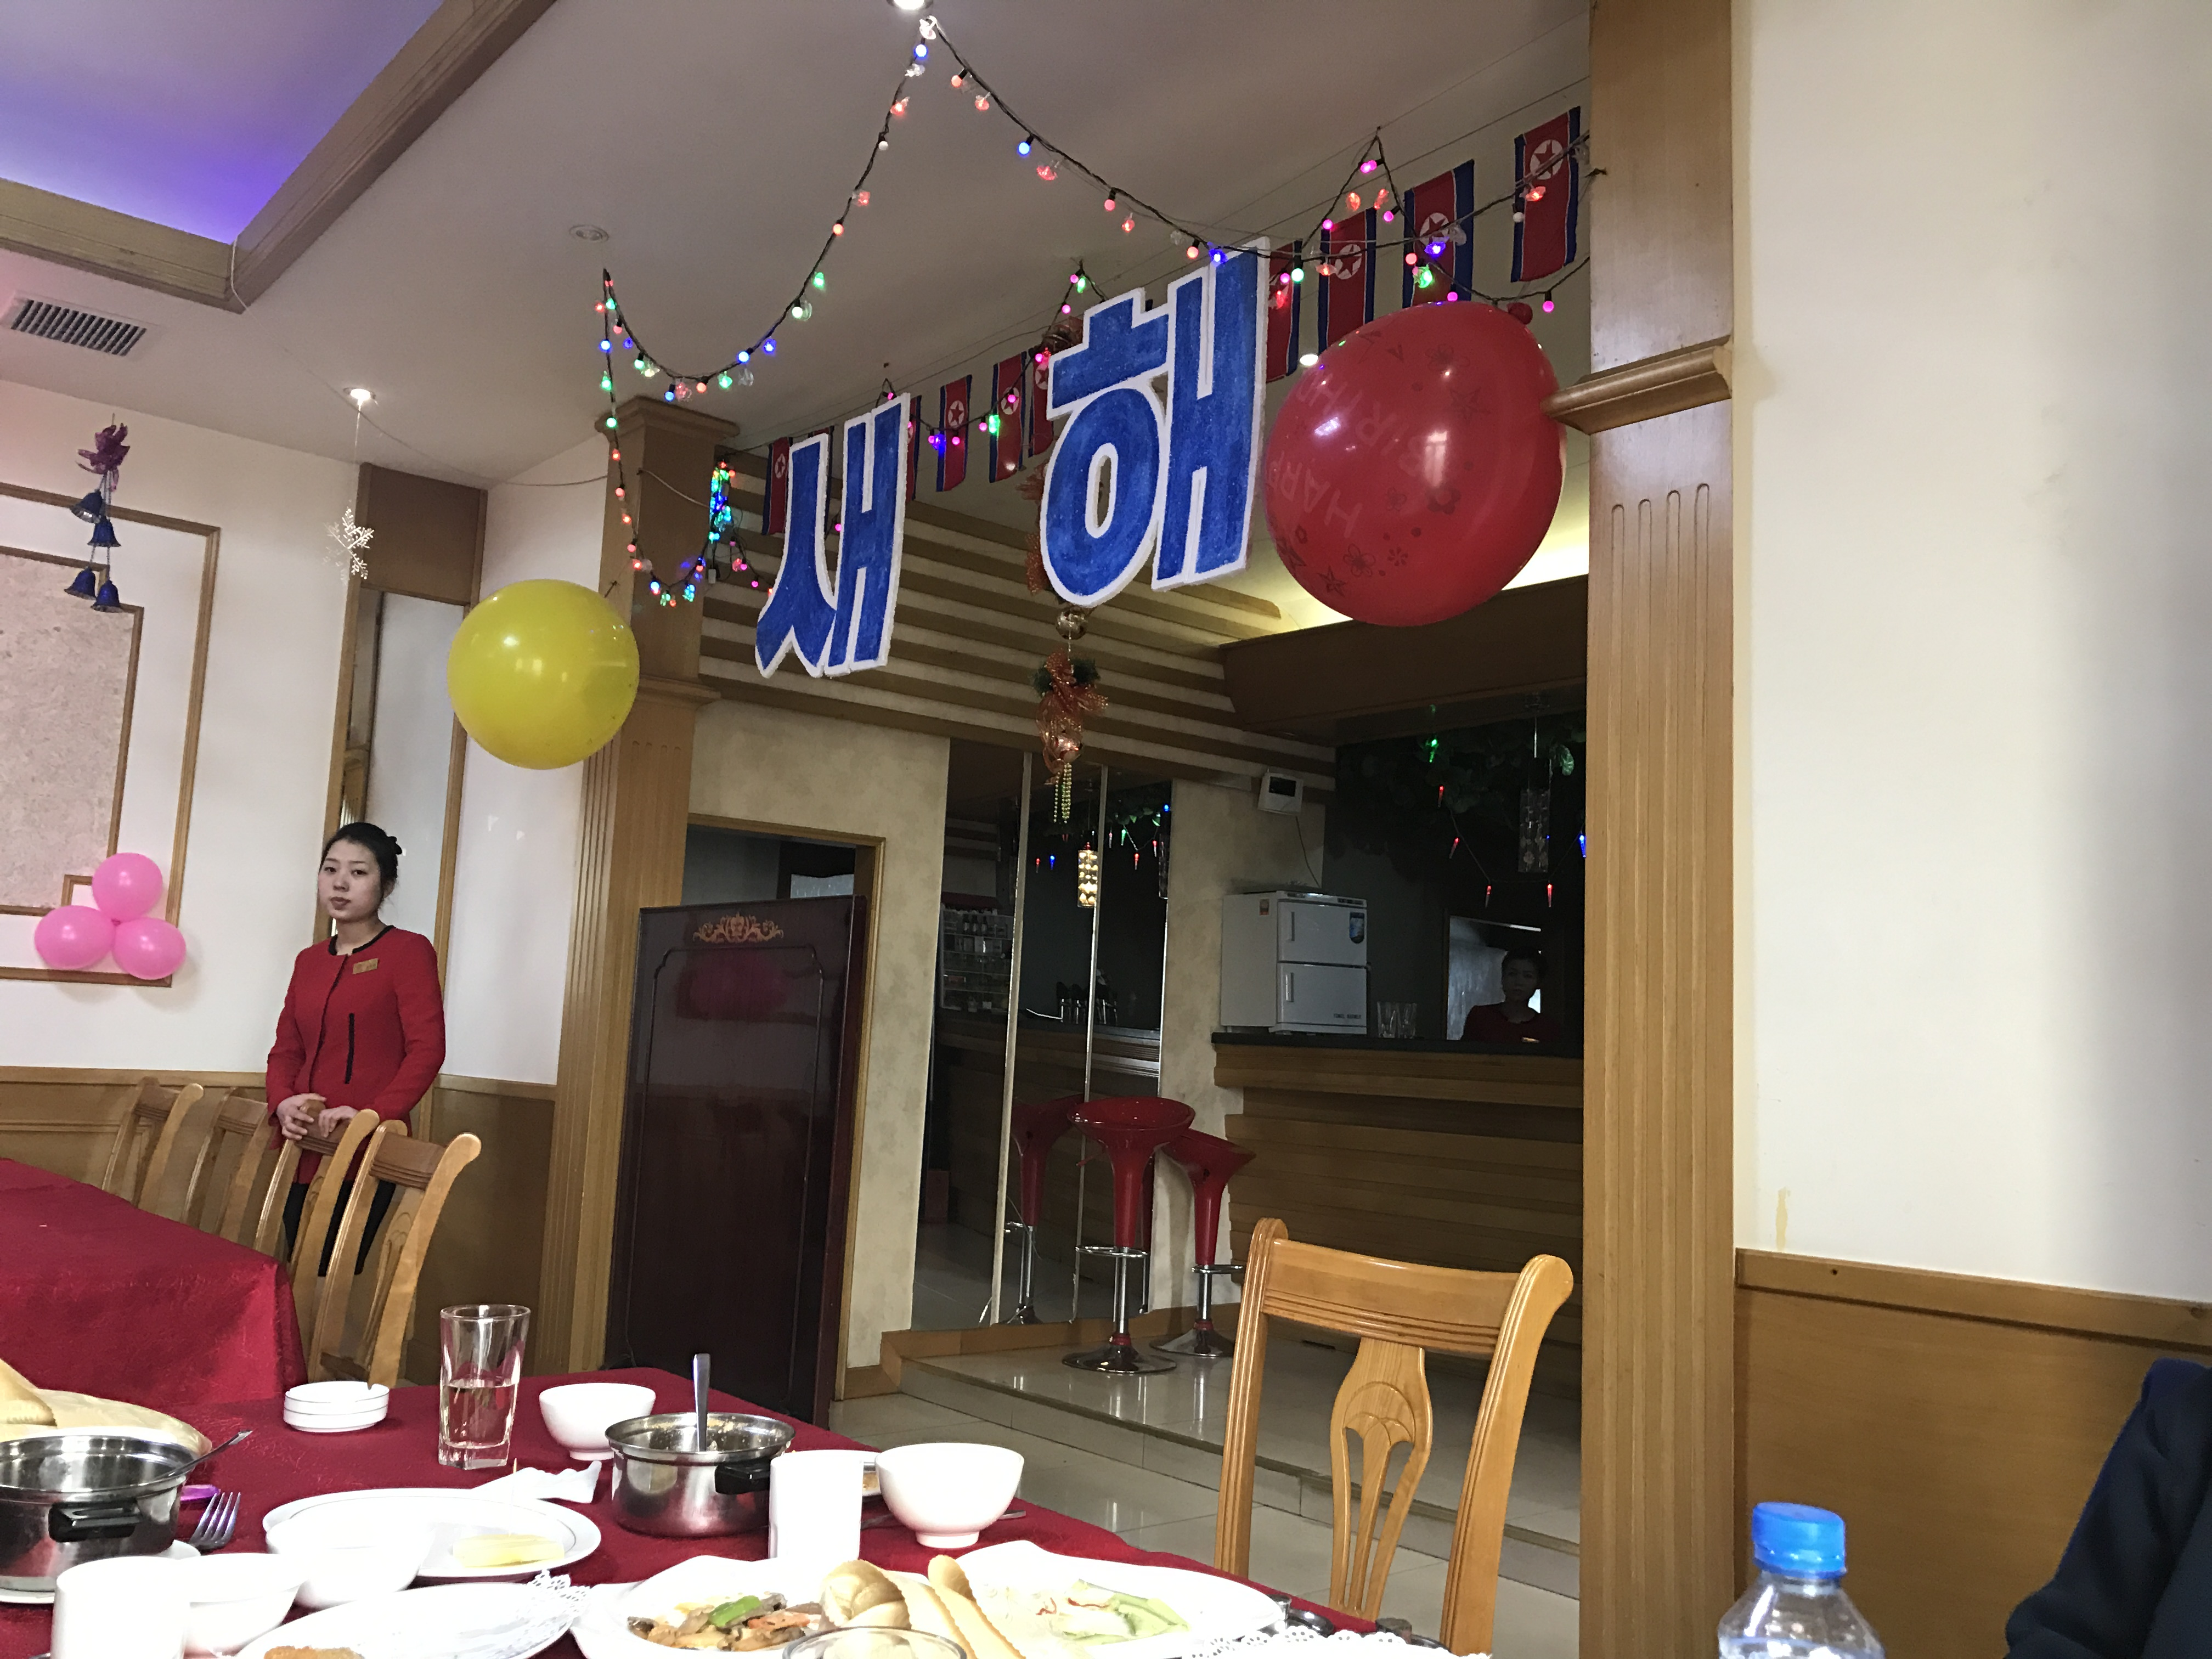 File New Year Decorations At Restaurant 33139928315 Jpg Wikimedia Commons